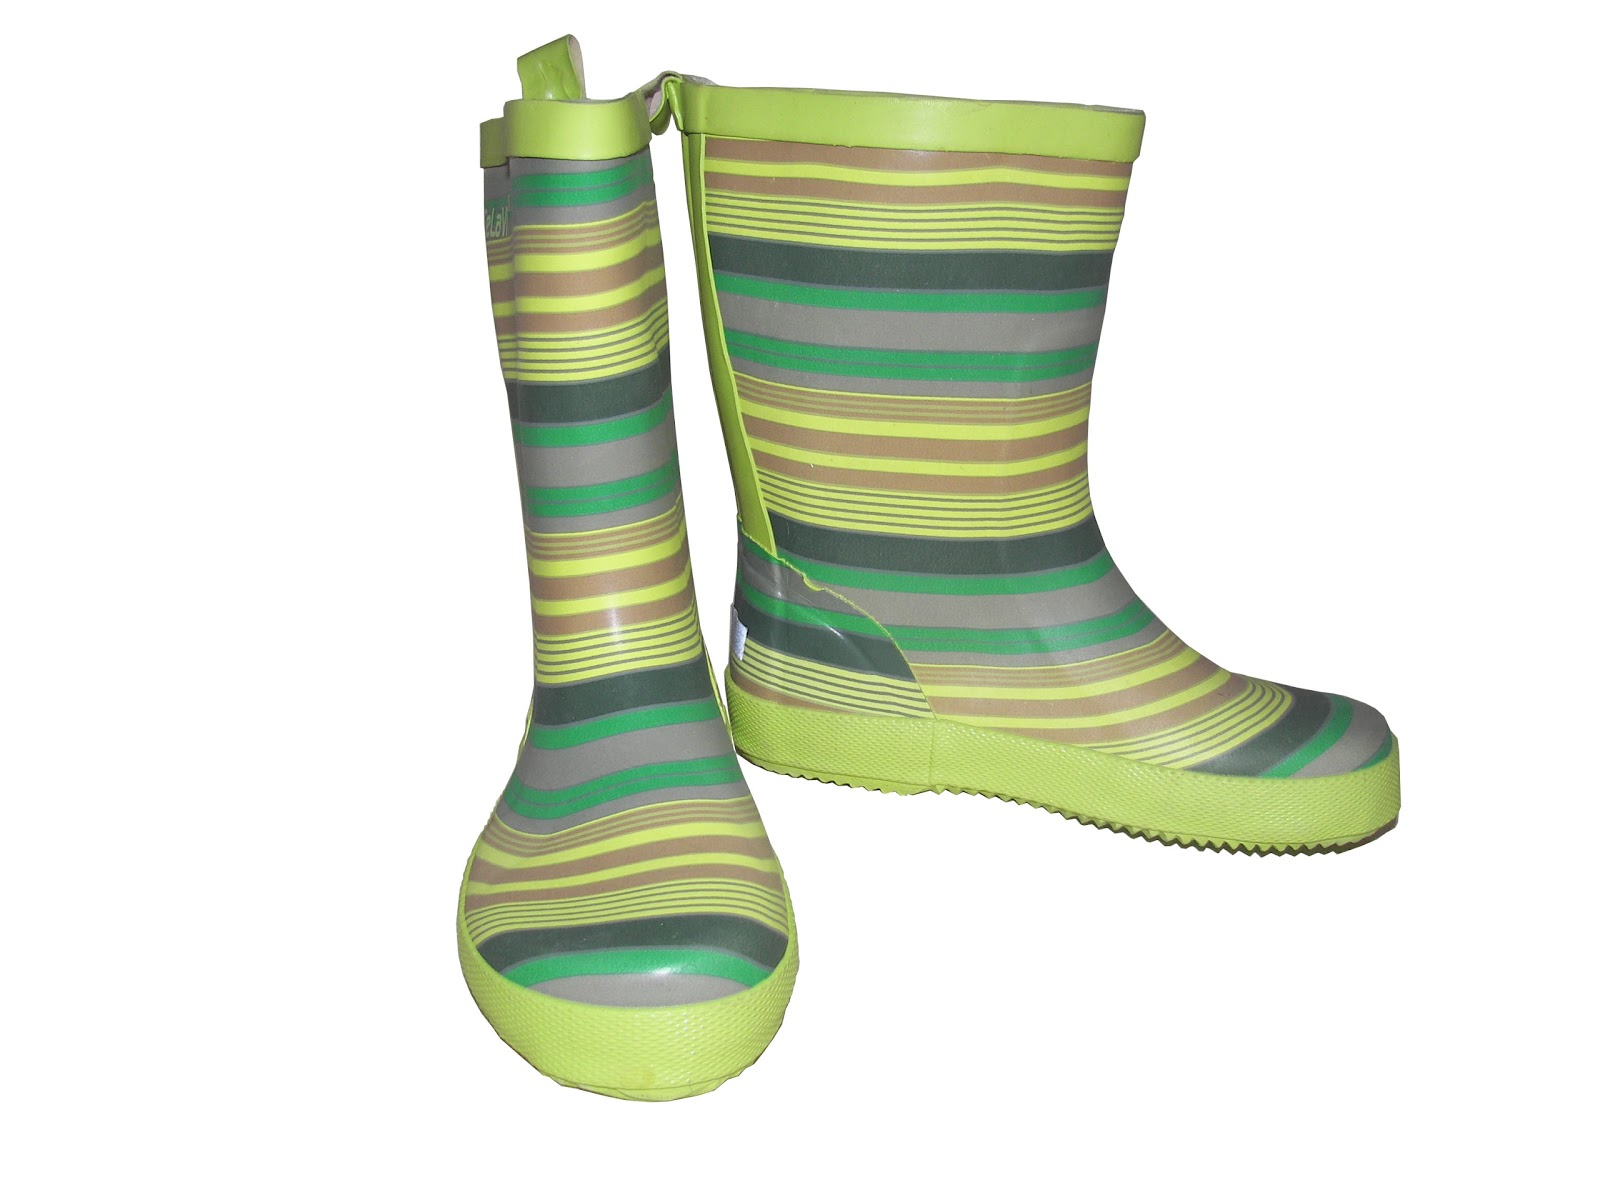 Kid's rain boots are a must-have accessory for every little puddle jumper. These classic waterproof boots come in tons of cool and colorful styles from fashion boots with stylish polka dots and plaid to animated pairs featuring dinosaurs, superheros or butterflies.